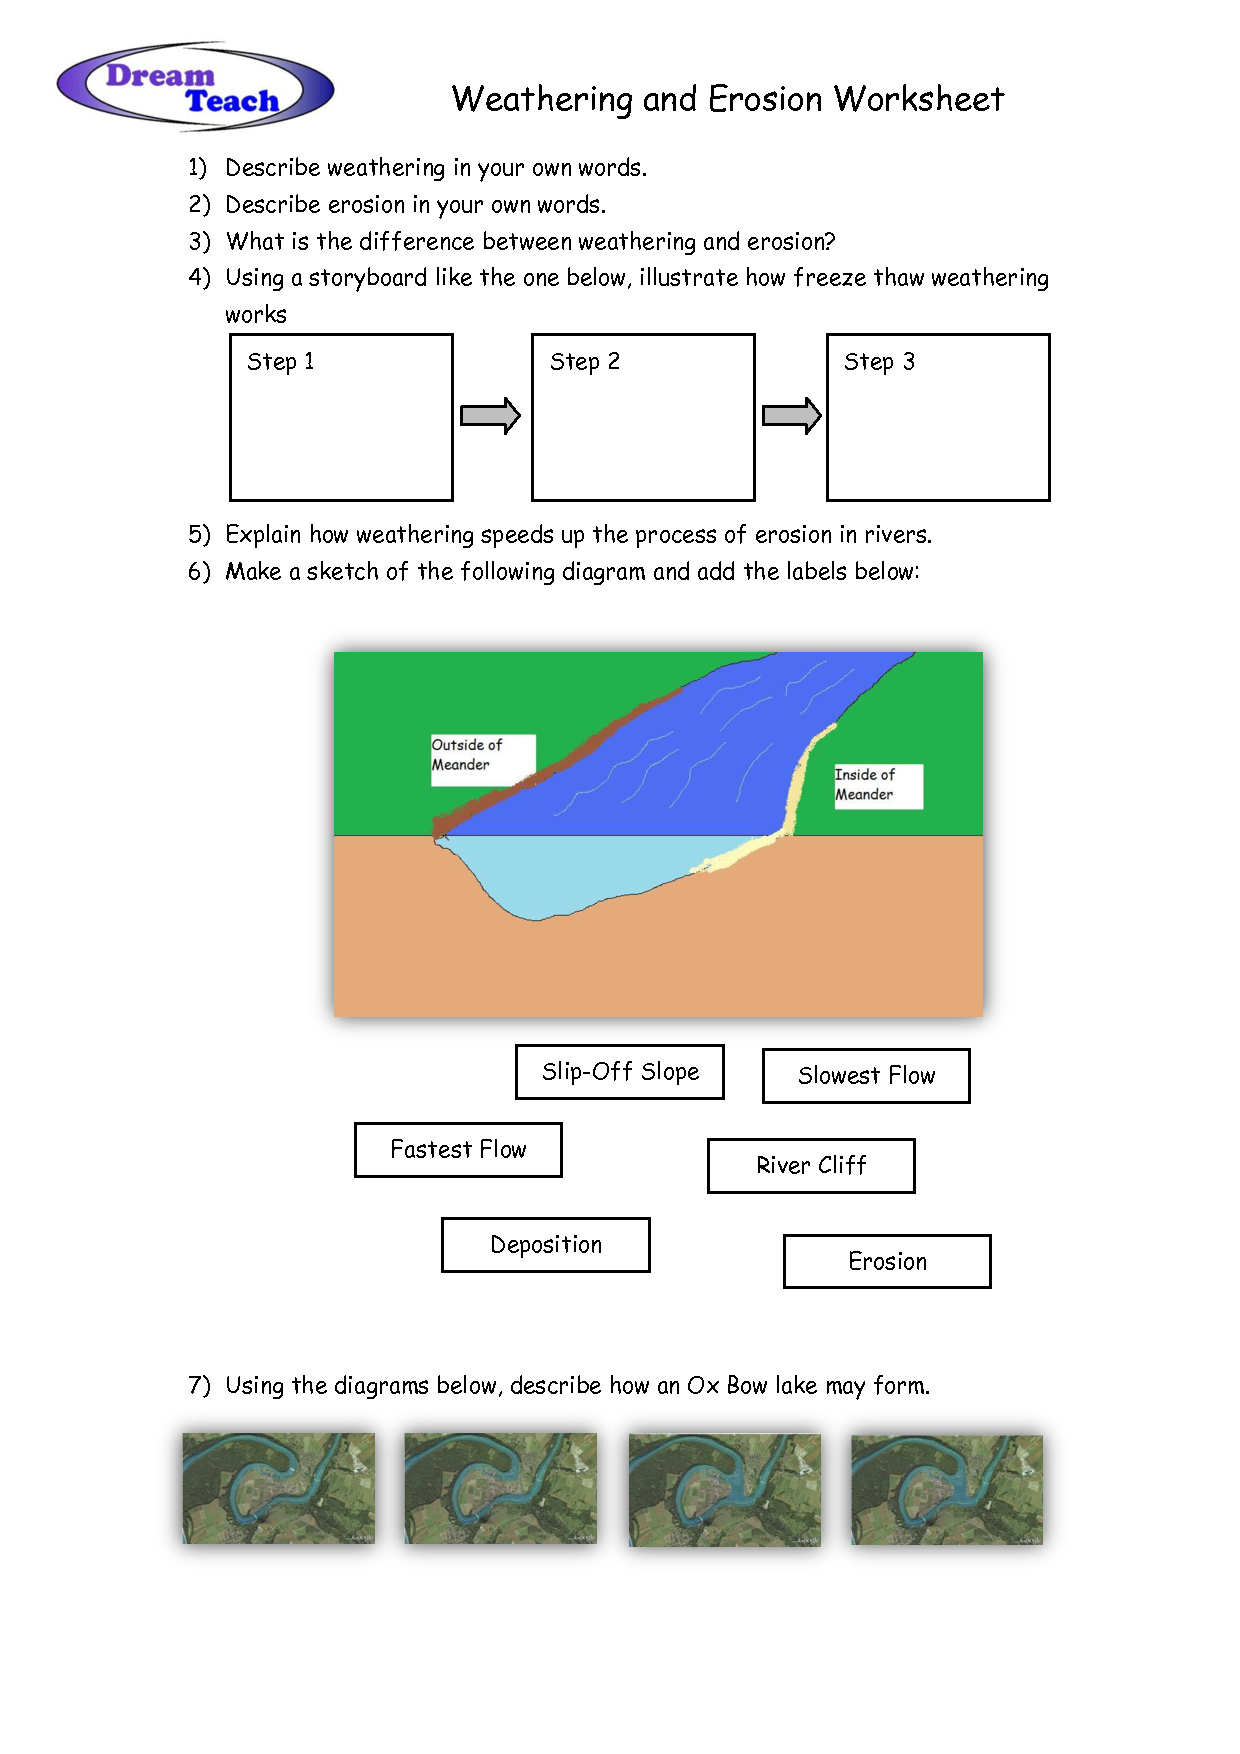 Weathering and erosion worksheet school pinterest for Soil information for kids